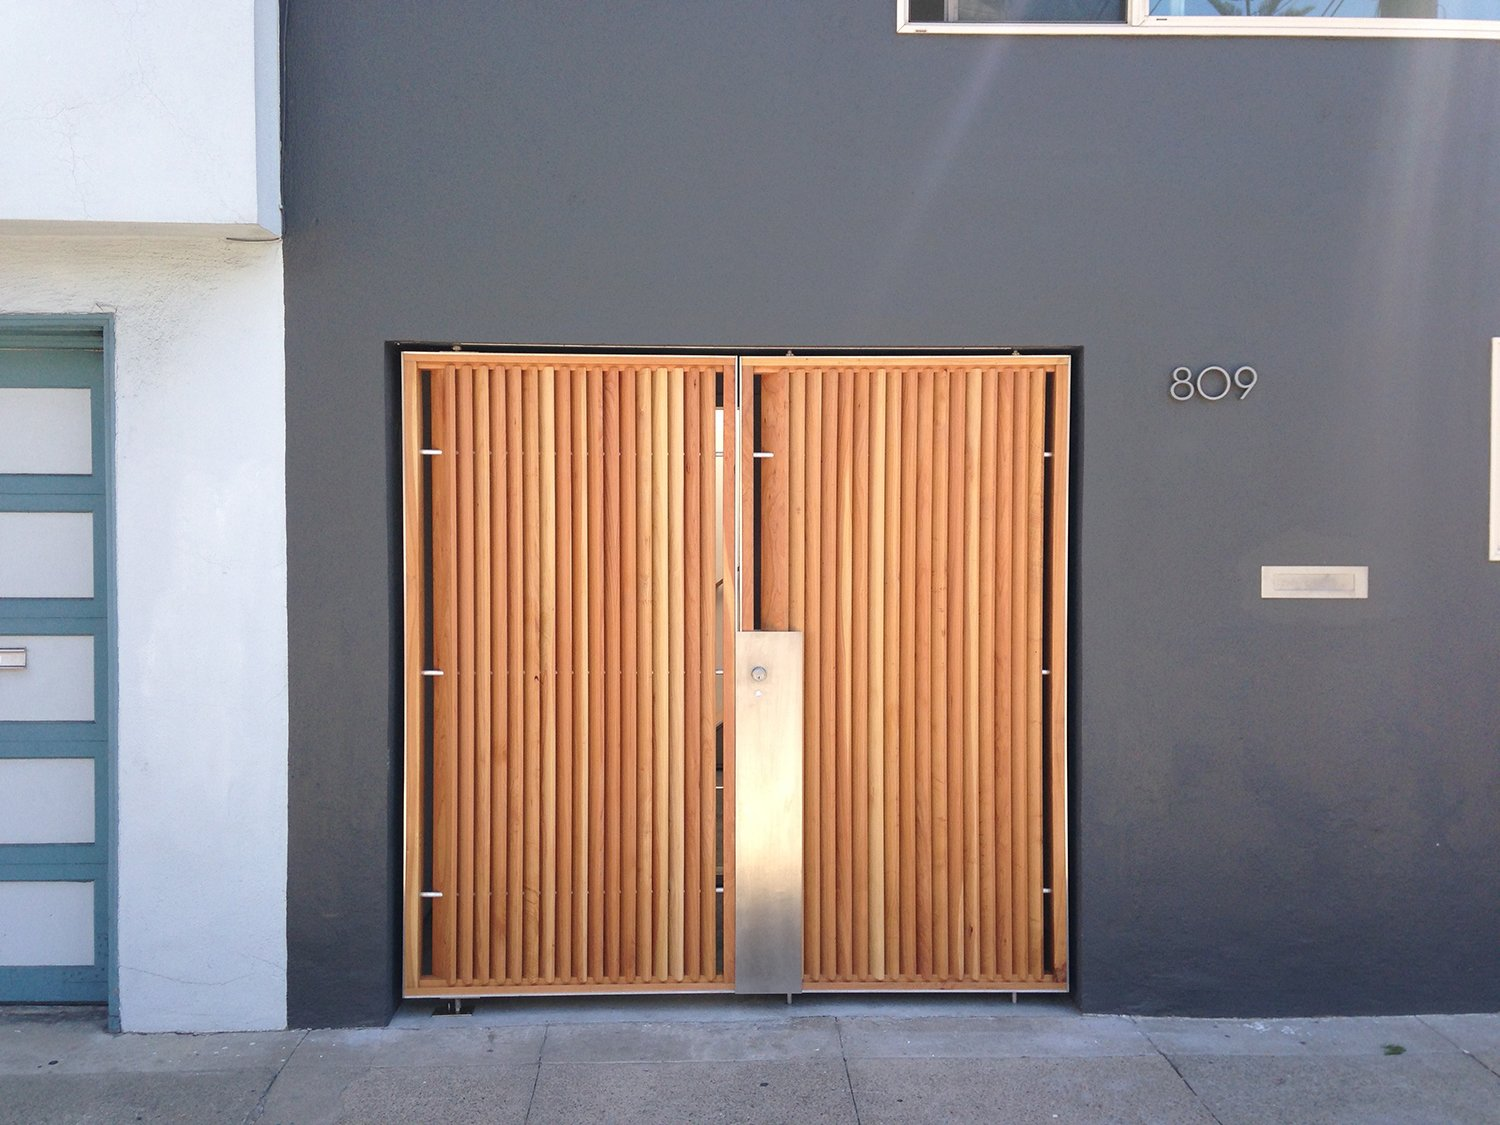 The focal point of the home's modernized exterior is a custom wood-and-steel entry gate designed by atelier KS and built by DeFauw Design + Fabrication, a local fabricator who also made custom closing hardware for the piece. Franz and Paré-Mayer paired angled cypress slats with an industrial metal frame to create the entryway. A few paces behind the gate, a large glass door provides direct access to the home, fulfilling the owners' wish for an entry vestibule that would be separate from the street. The angled wood slats offer privacy from the exterior, while selectively allowing light to penetrate through. Tagged: Doors, Wood, Exterior, and Swing Door Type.  KS Mission by Sarah Akkoush